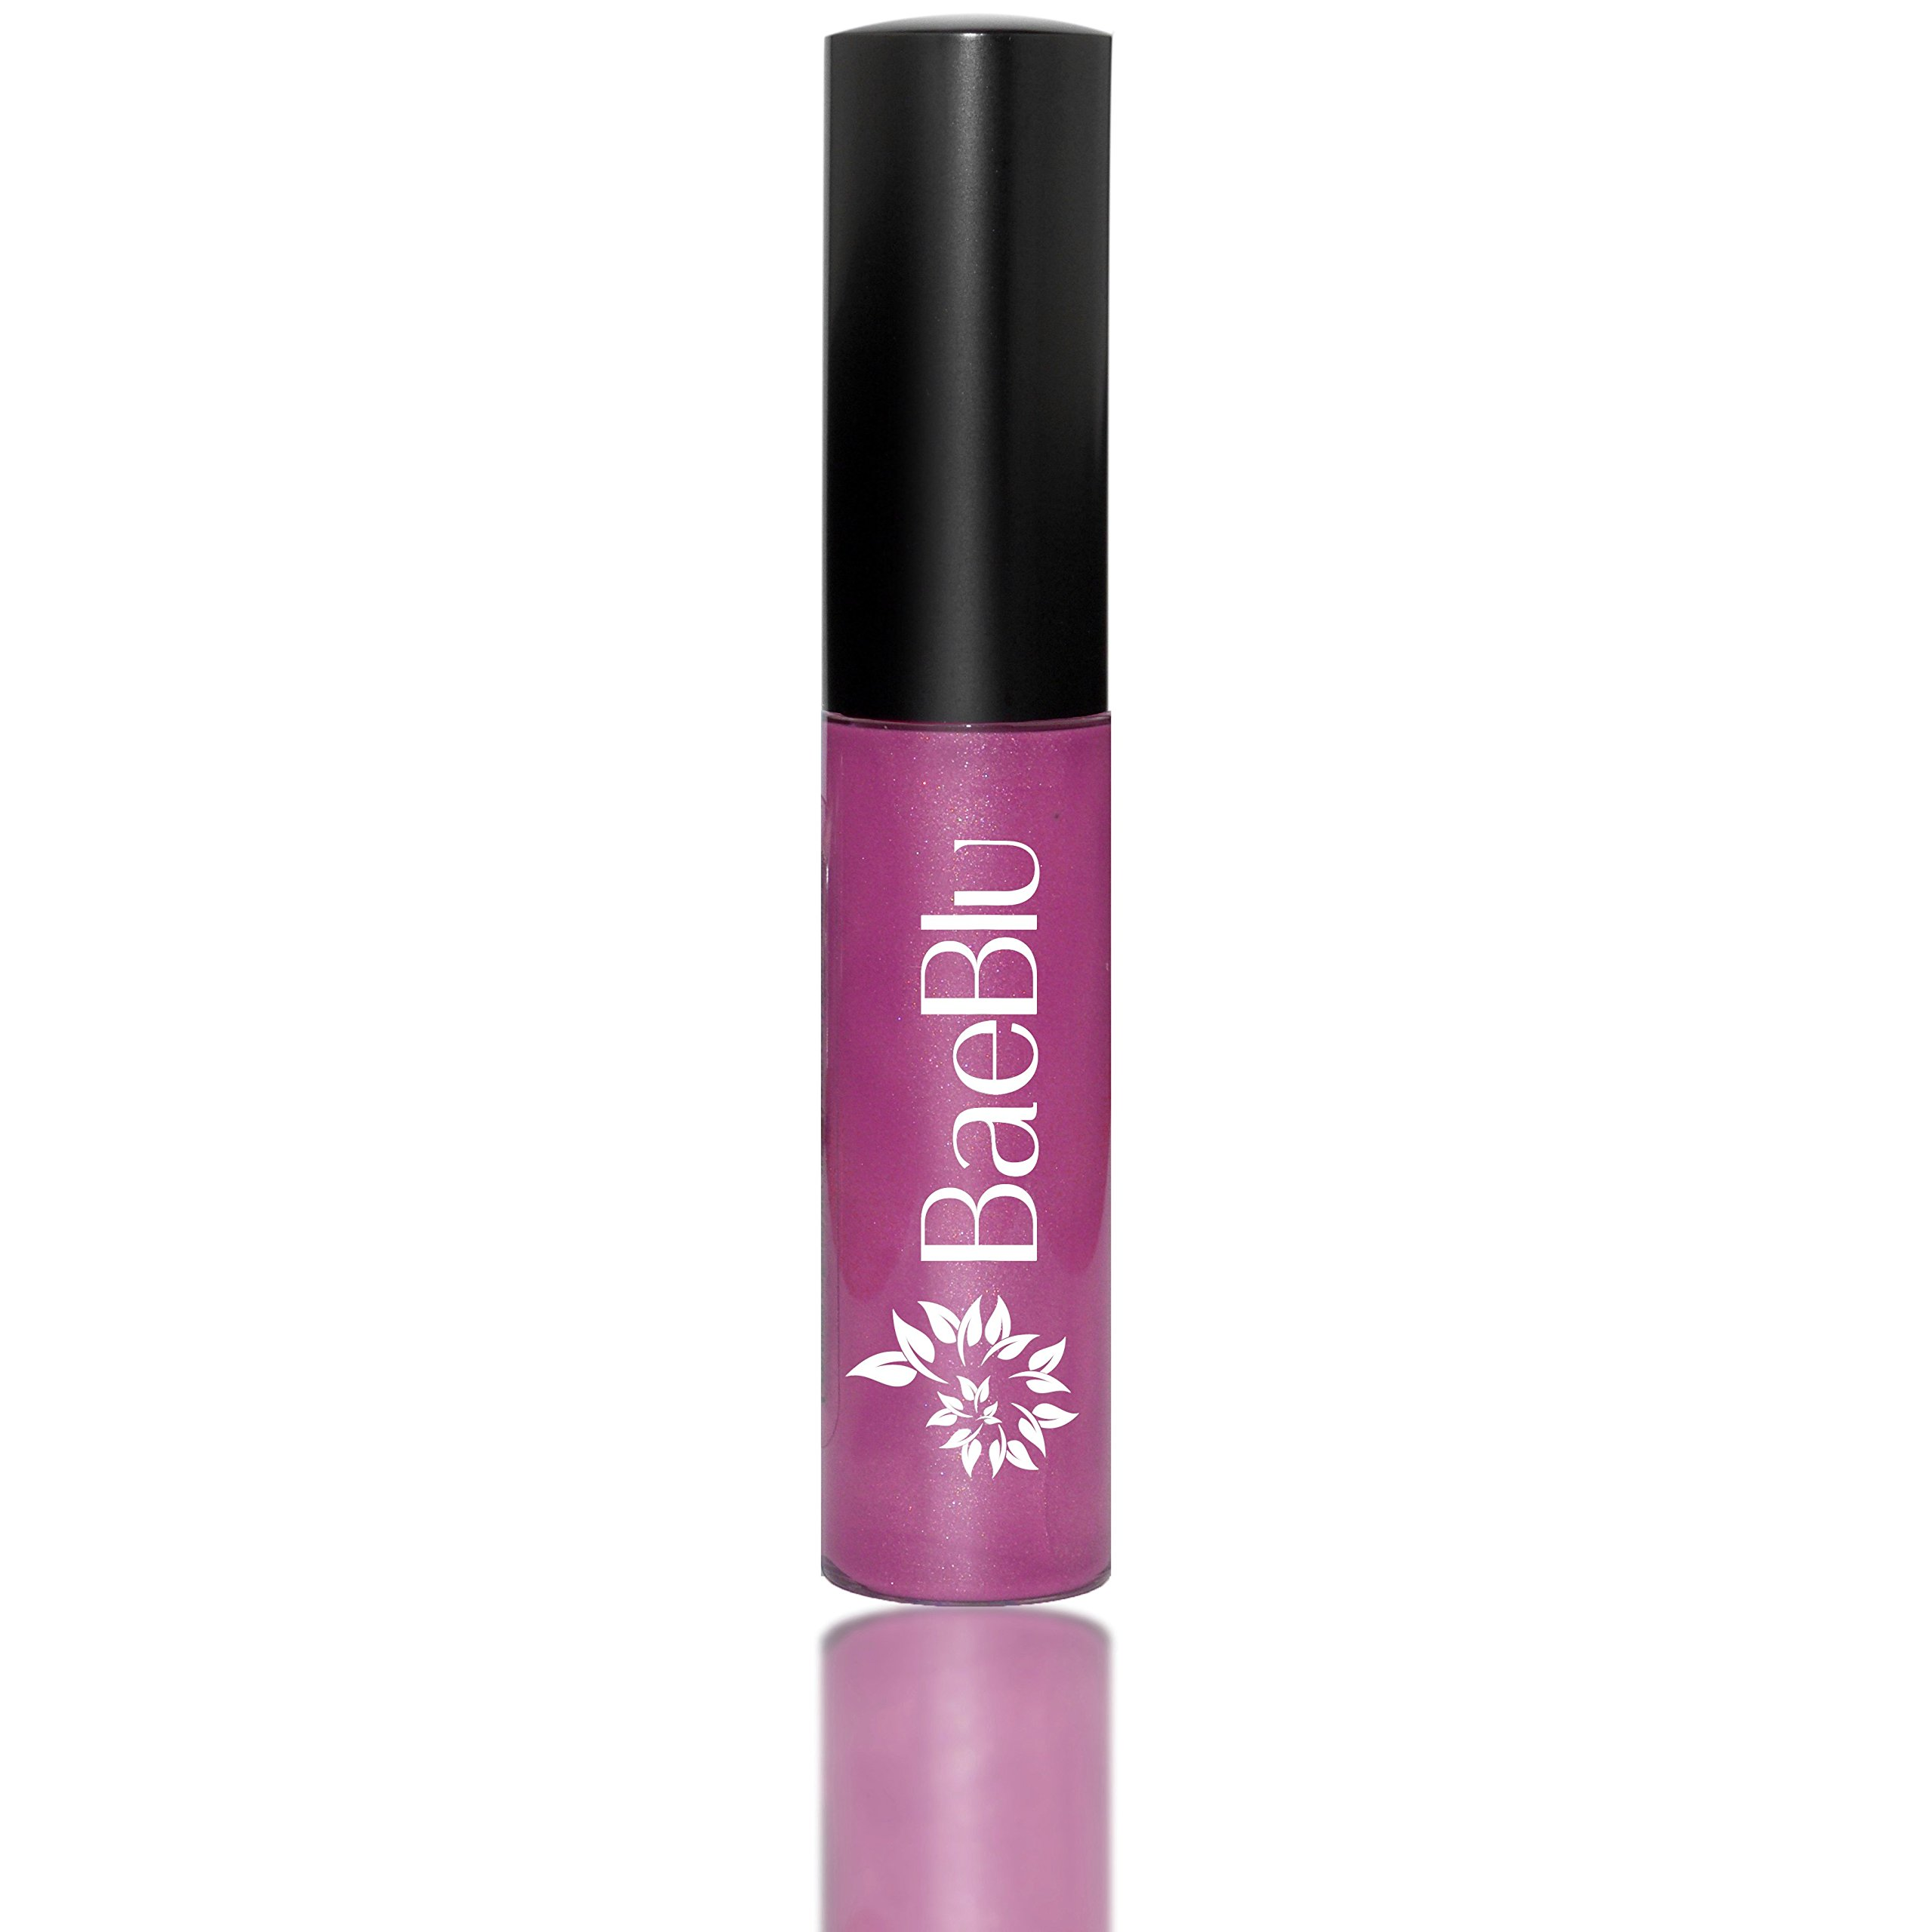 BaeBlu Organic Vegan Lip Gloss, 100% Natural Non-Toxic Moisturizing Ingredients, Wild Orchid